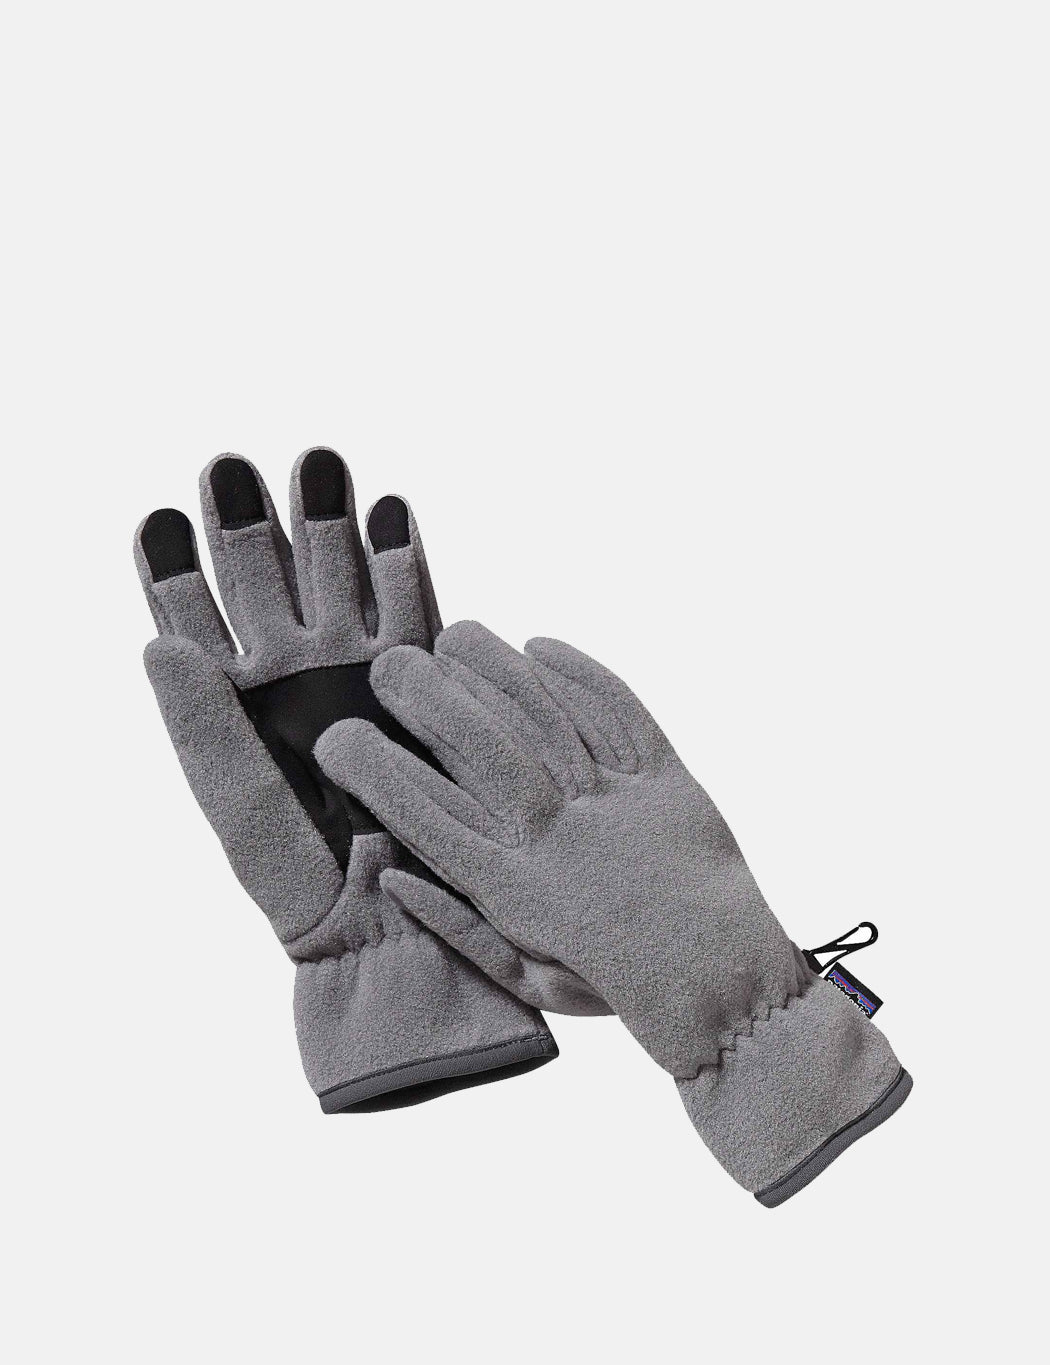 Patagonia Synch Gloves (Fleece) - Nickel Brown